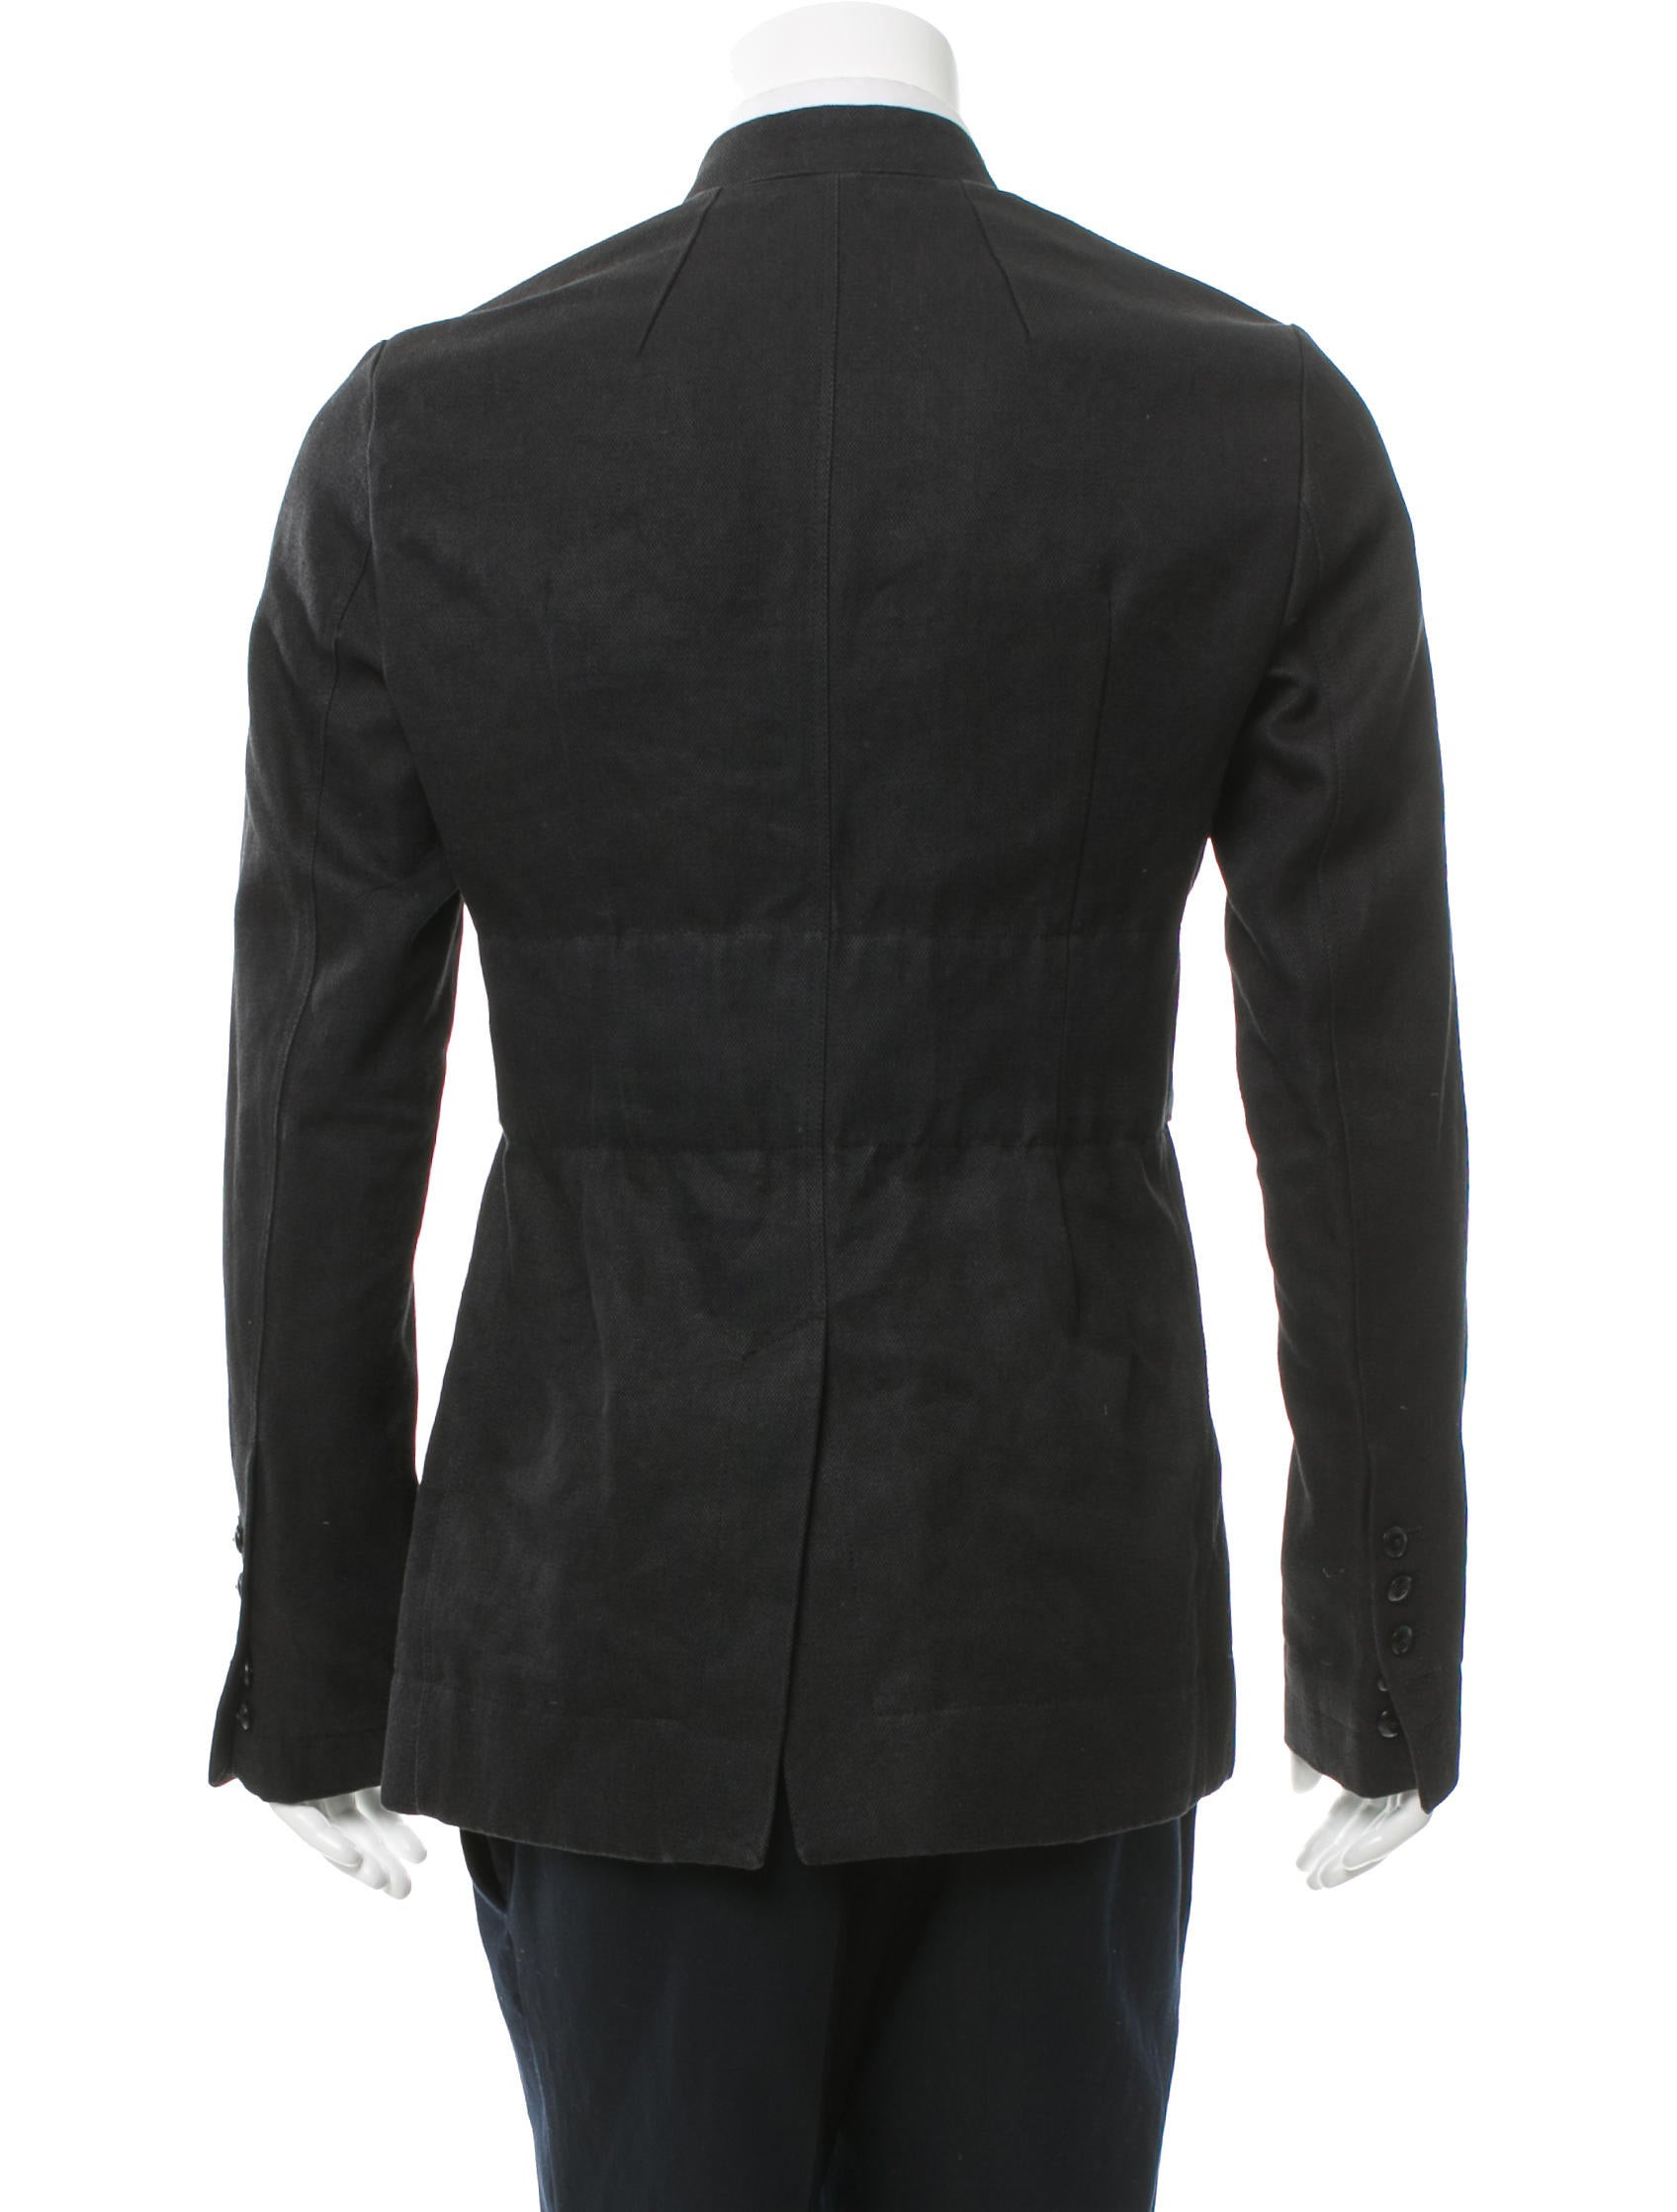 Eileen Fisher's jackets are current classics, so we can wear them for several fbcpmhoe.cf each season she picks out one style to emphasise. And this season it has a shawl collar. Style details: long lapels down to a single button, and lapels about 1/3 the width of the shoulders.